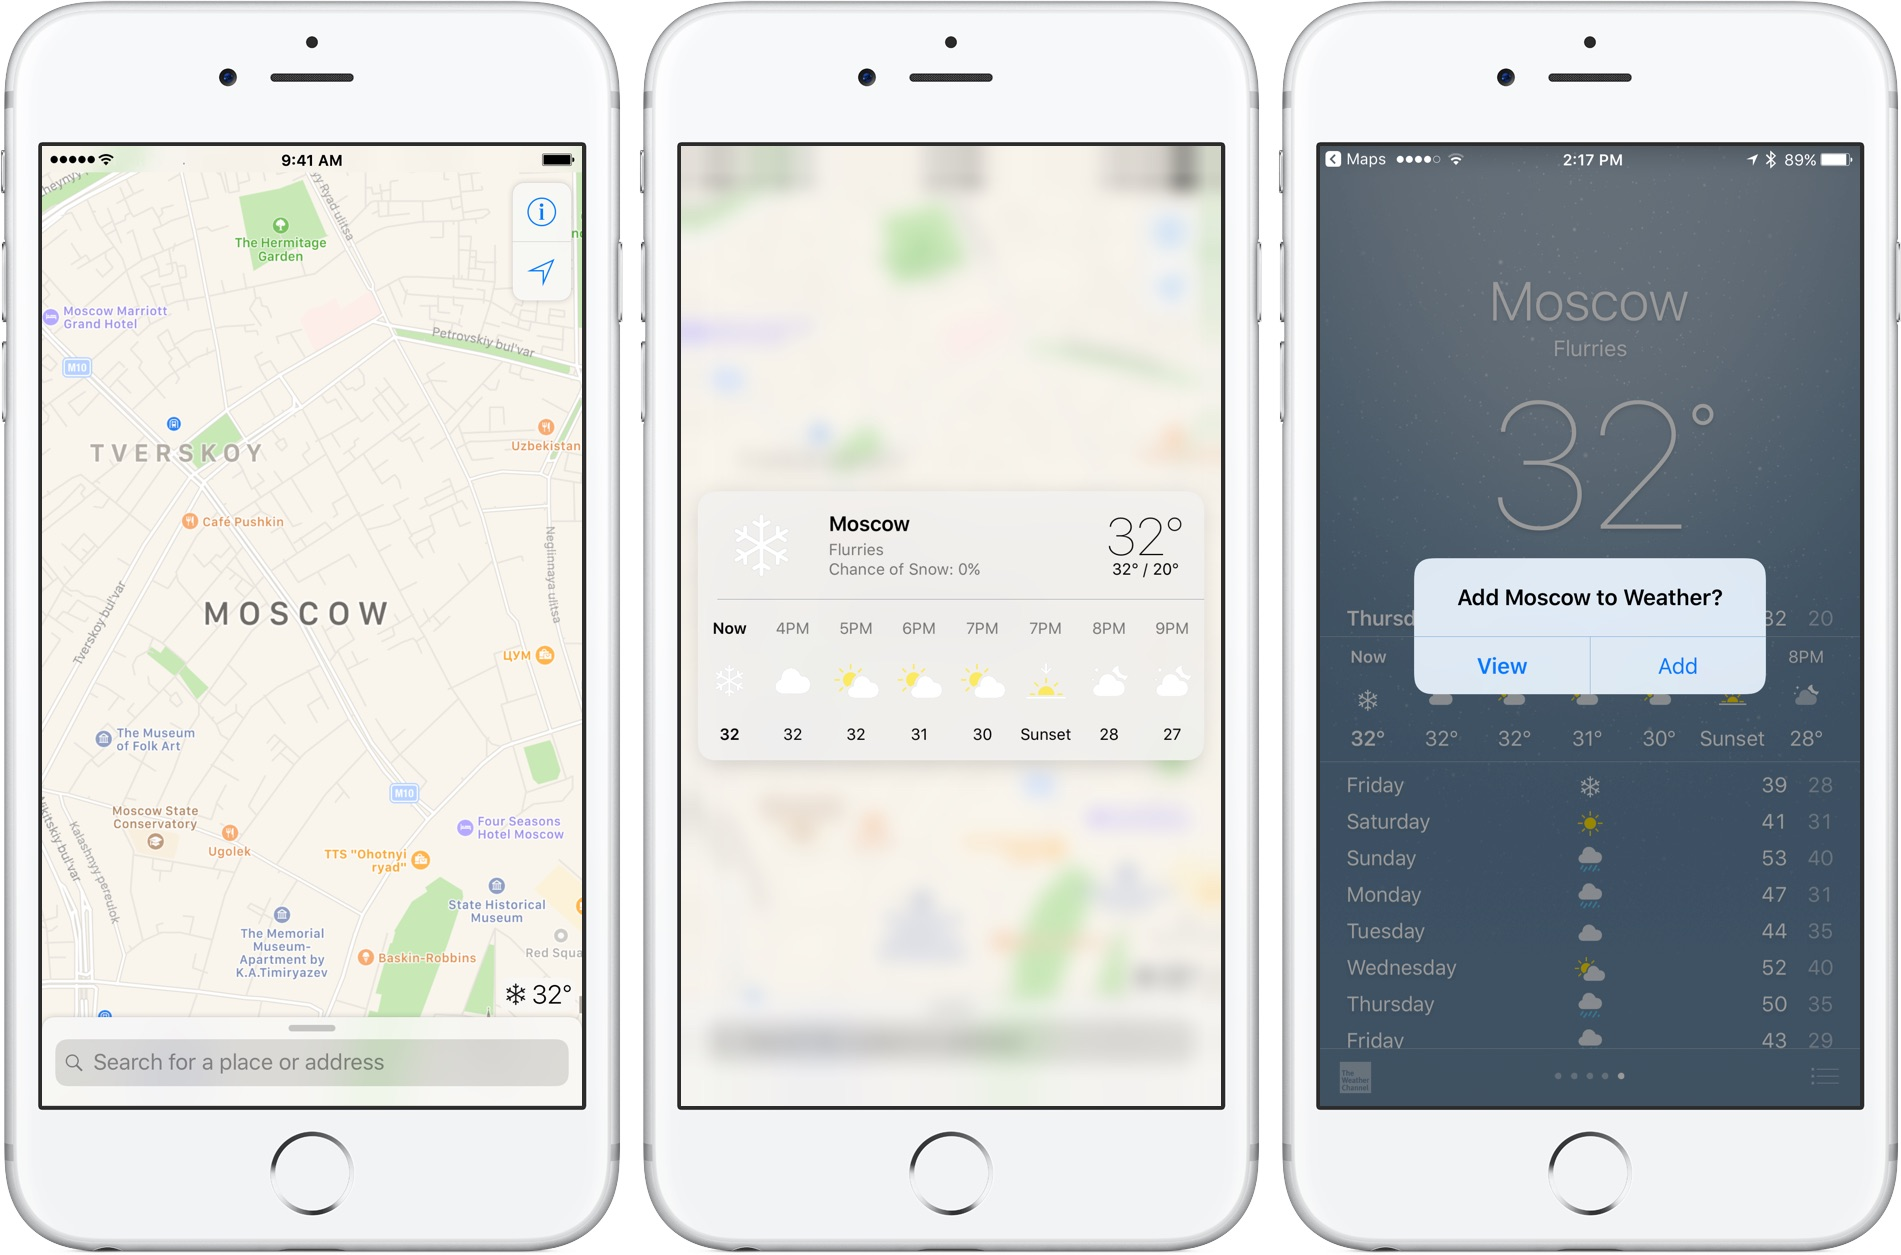 How To Display Hourly Weather Forecast For Your Destination On Apple